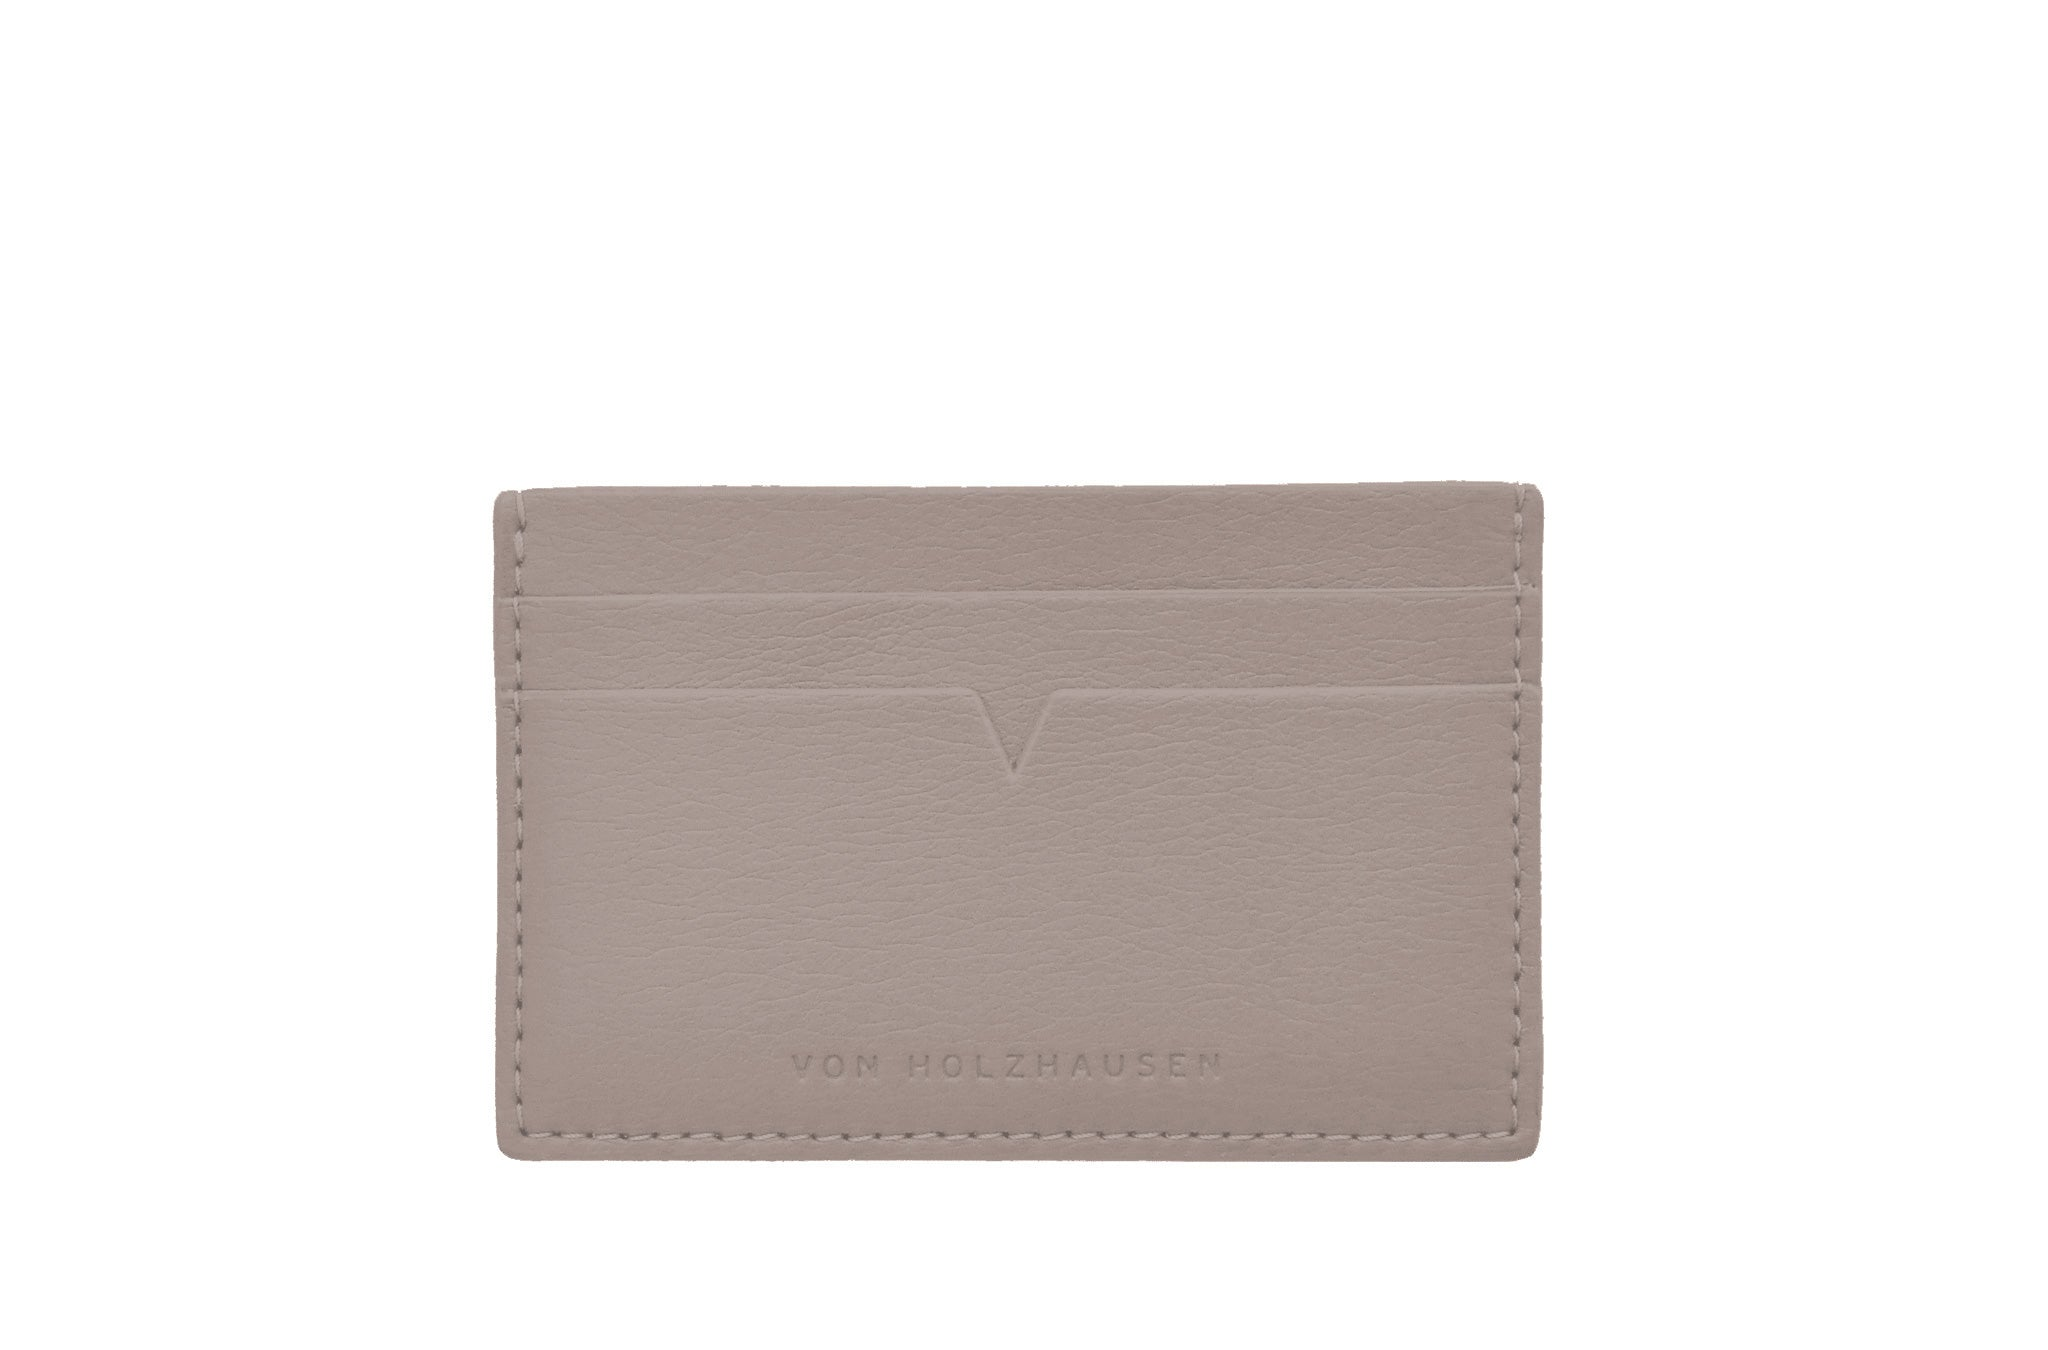 The Credit Card Holder in Technik-Leather in Stone